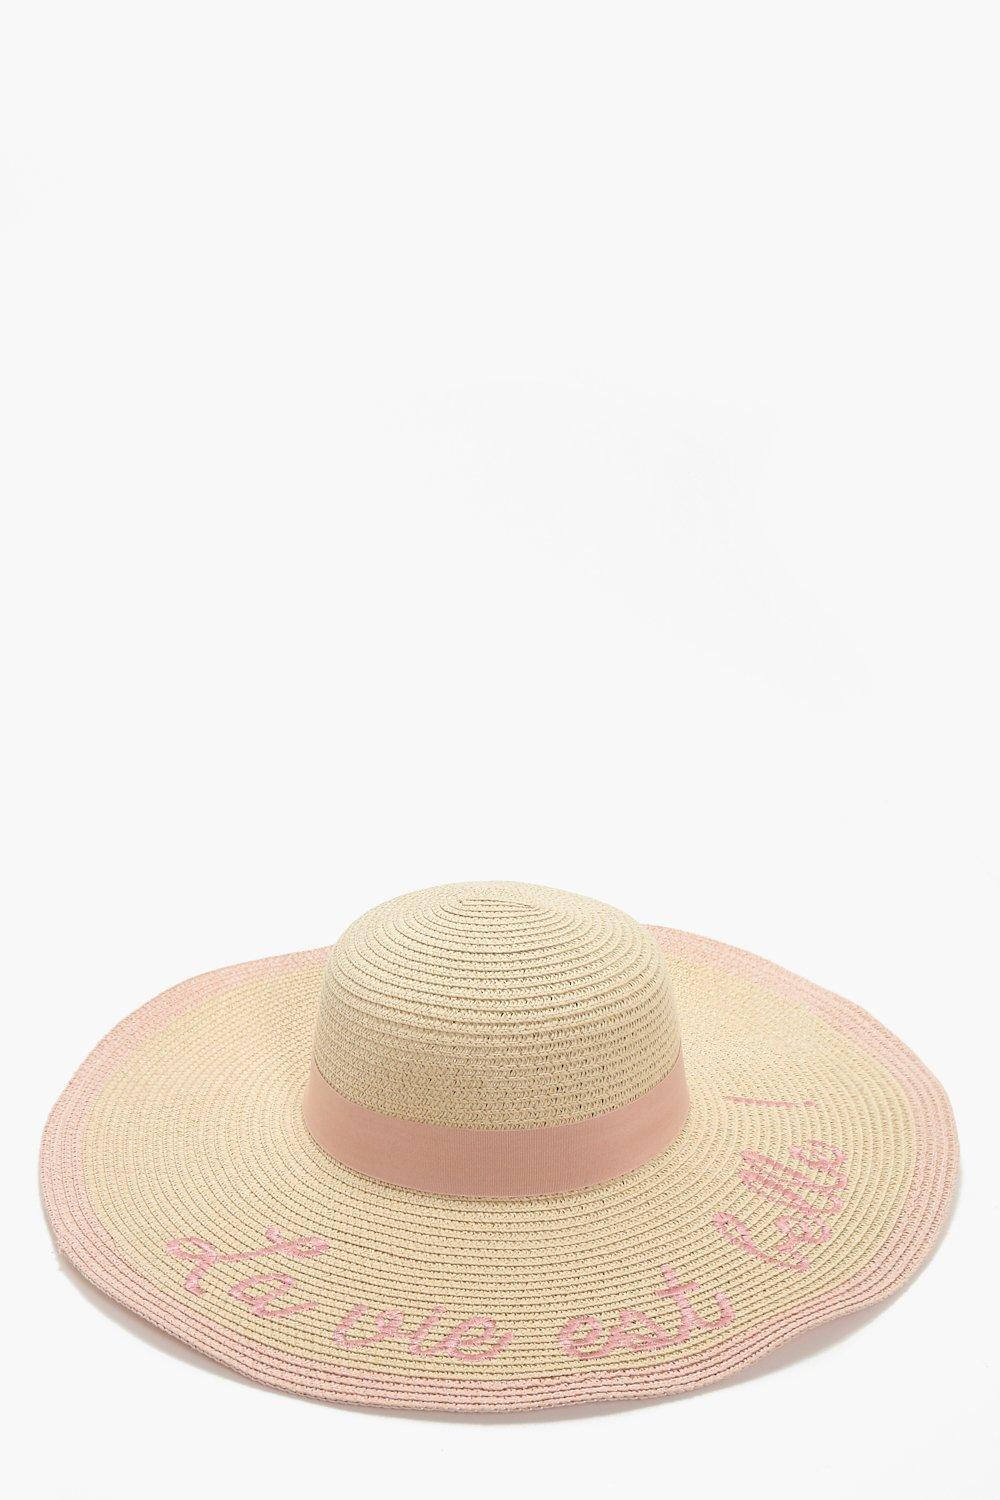 Slogan Summer Floppy Hat - natural - Sally Slogan